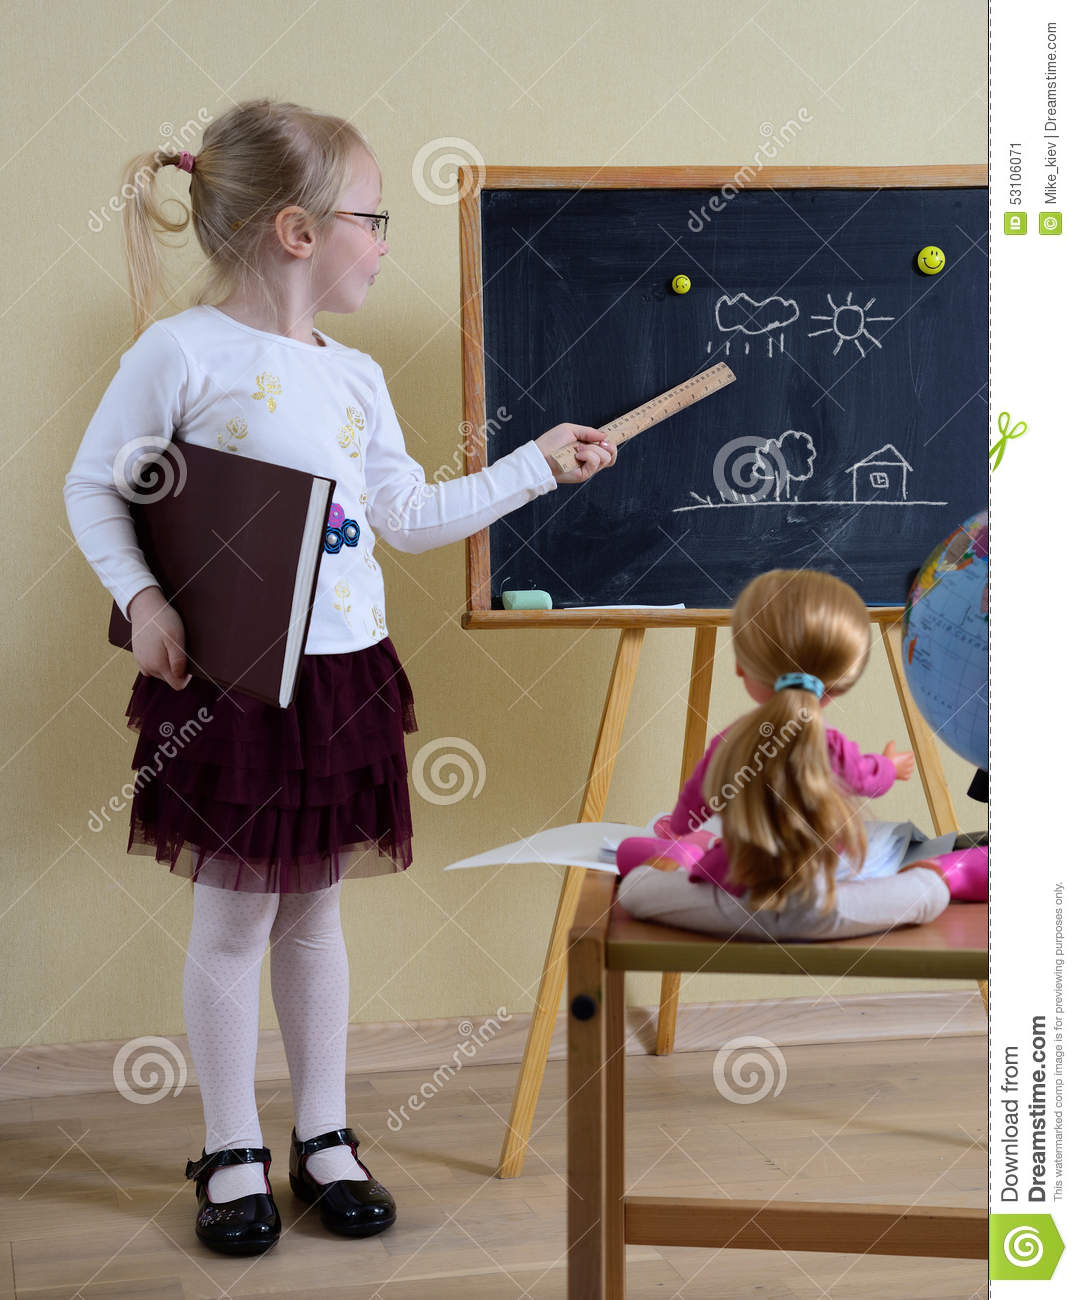 Play School stock image. Image of learn, point, hand - 53106071